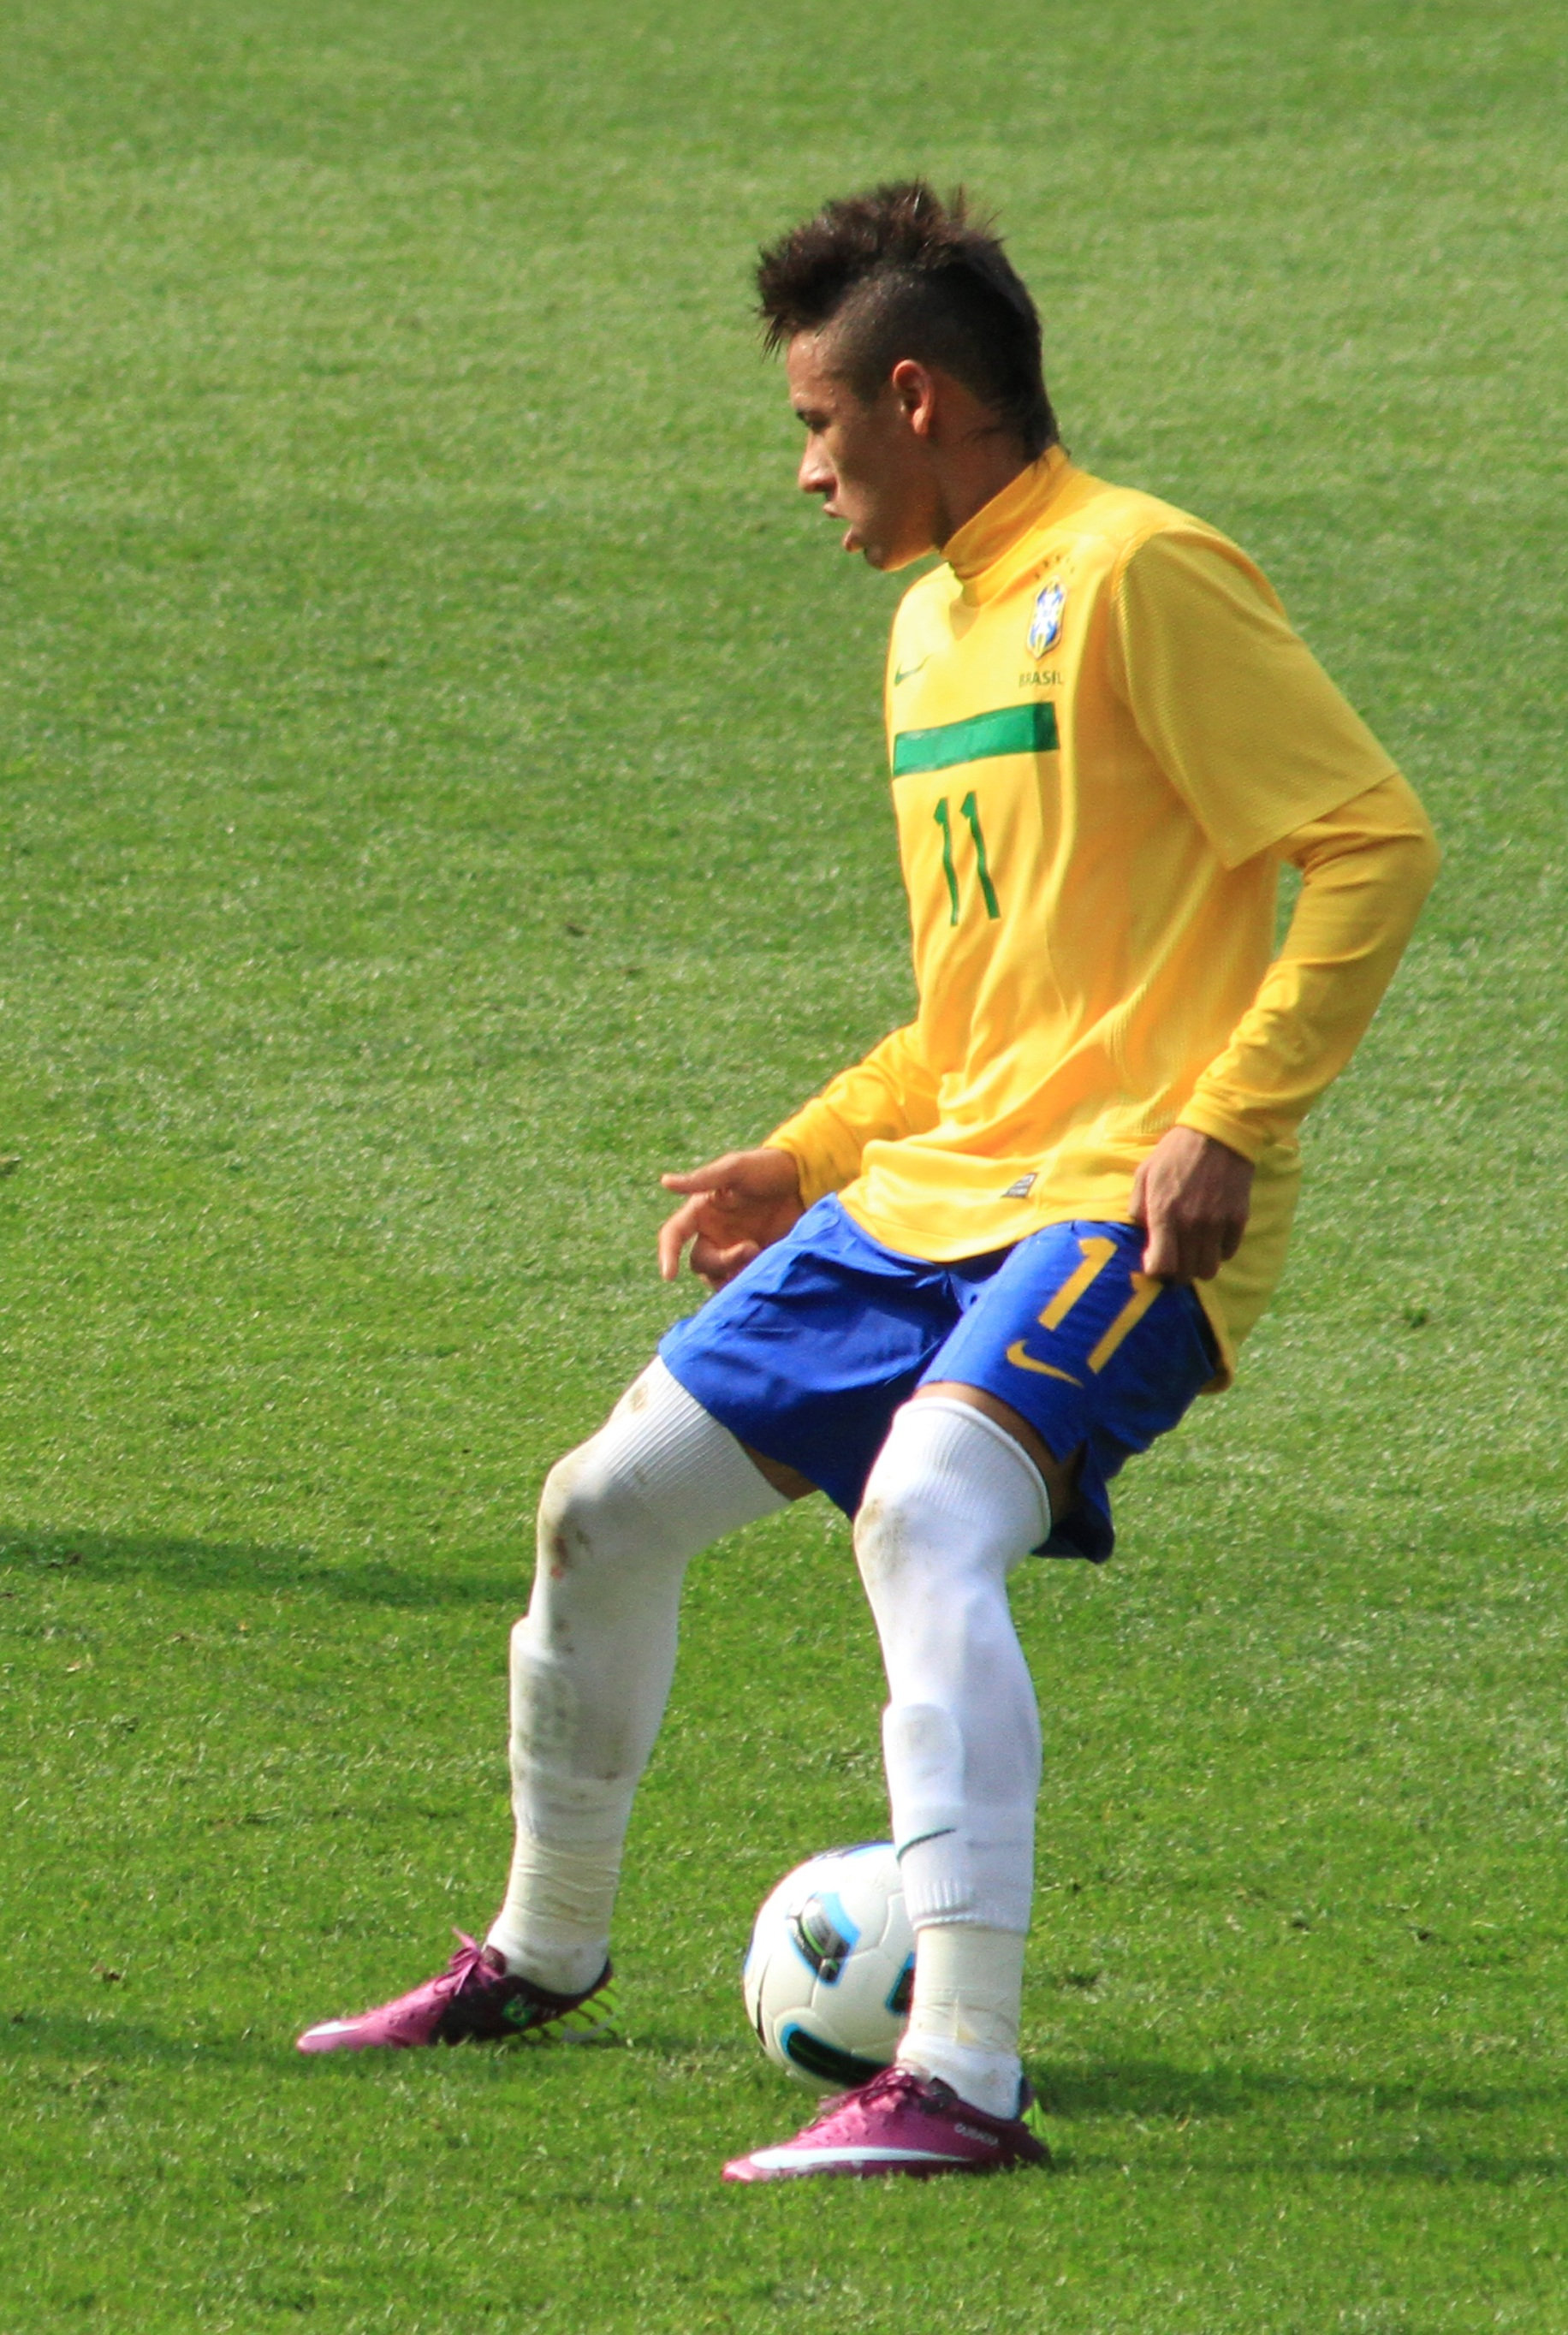 Description Neymar 2011